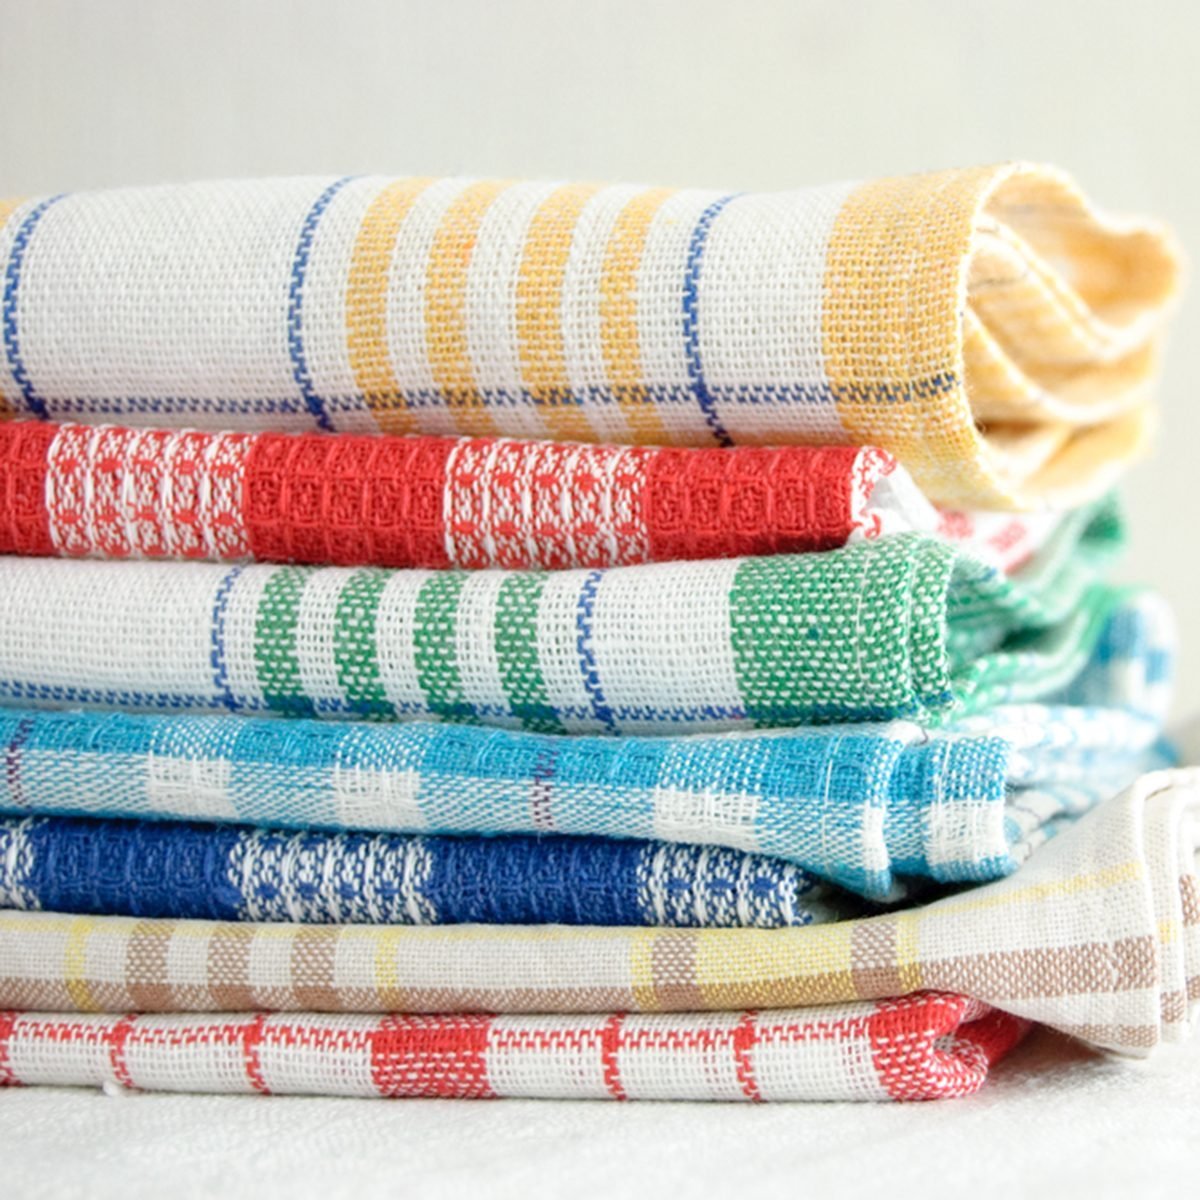 11 Surprising Uses for a Kitchen Towel